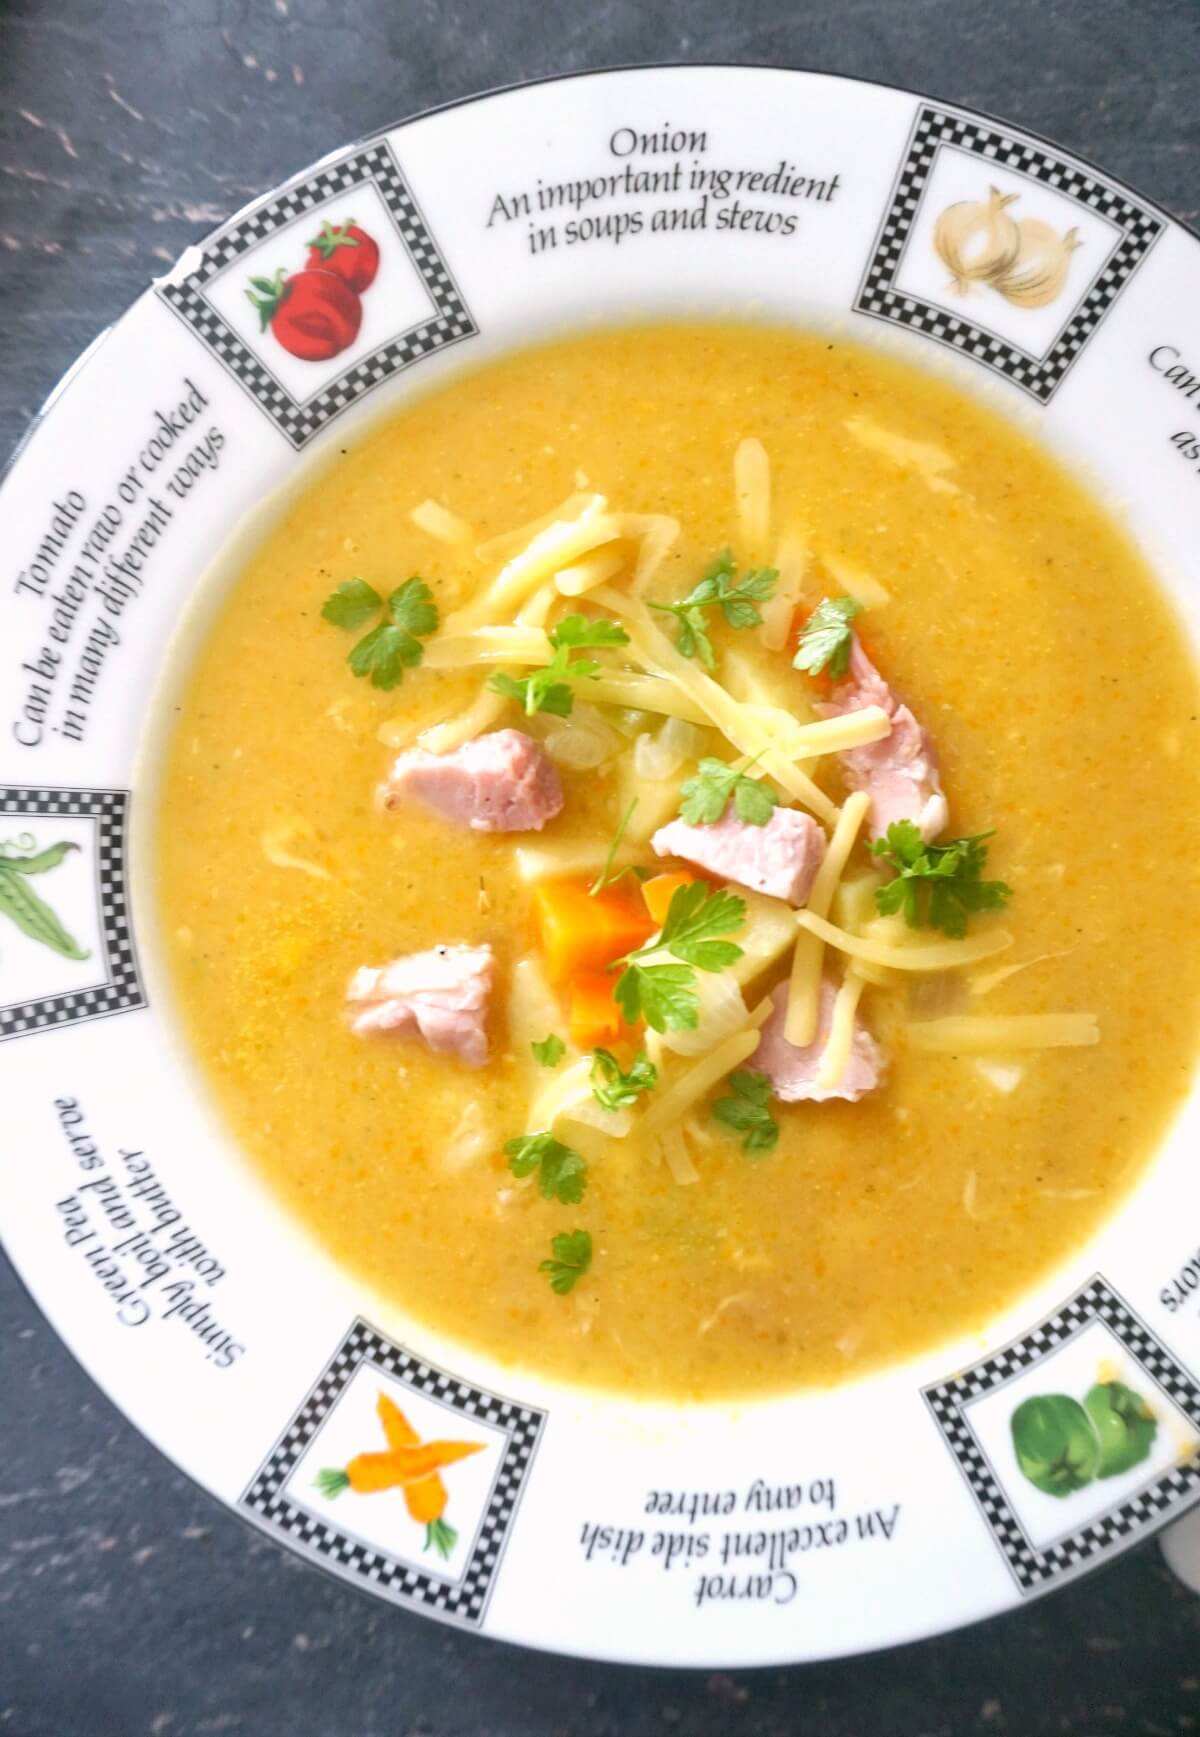 Overhead shoot of a plate with creamy soup garnished with ham and veggie chunks and grated cheese